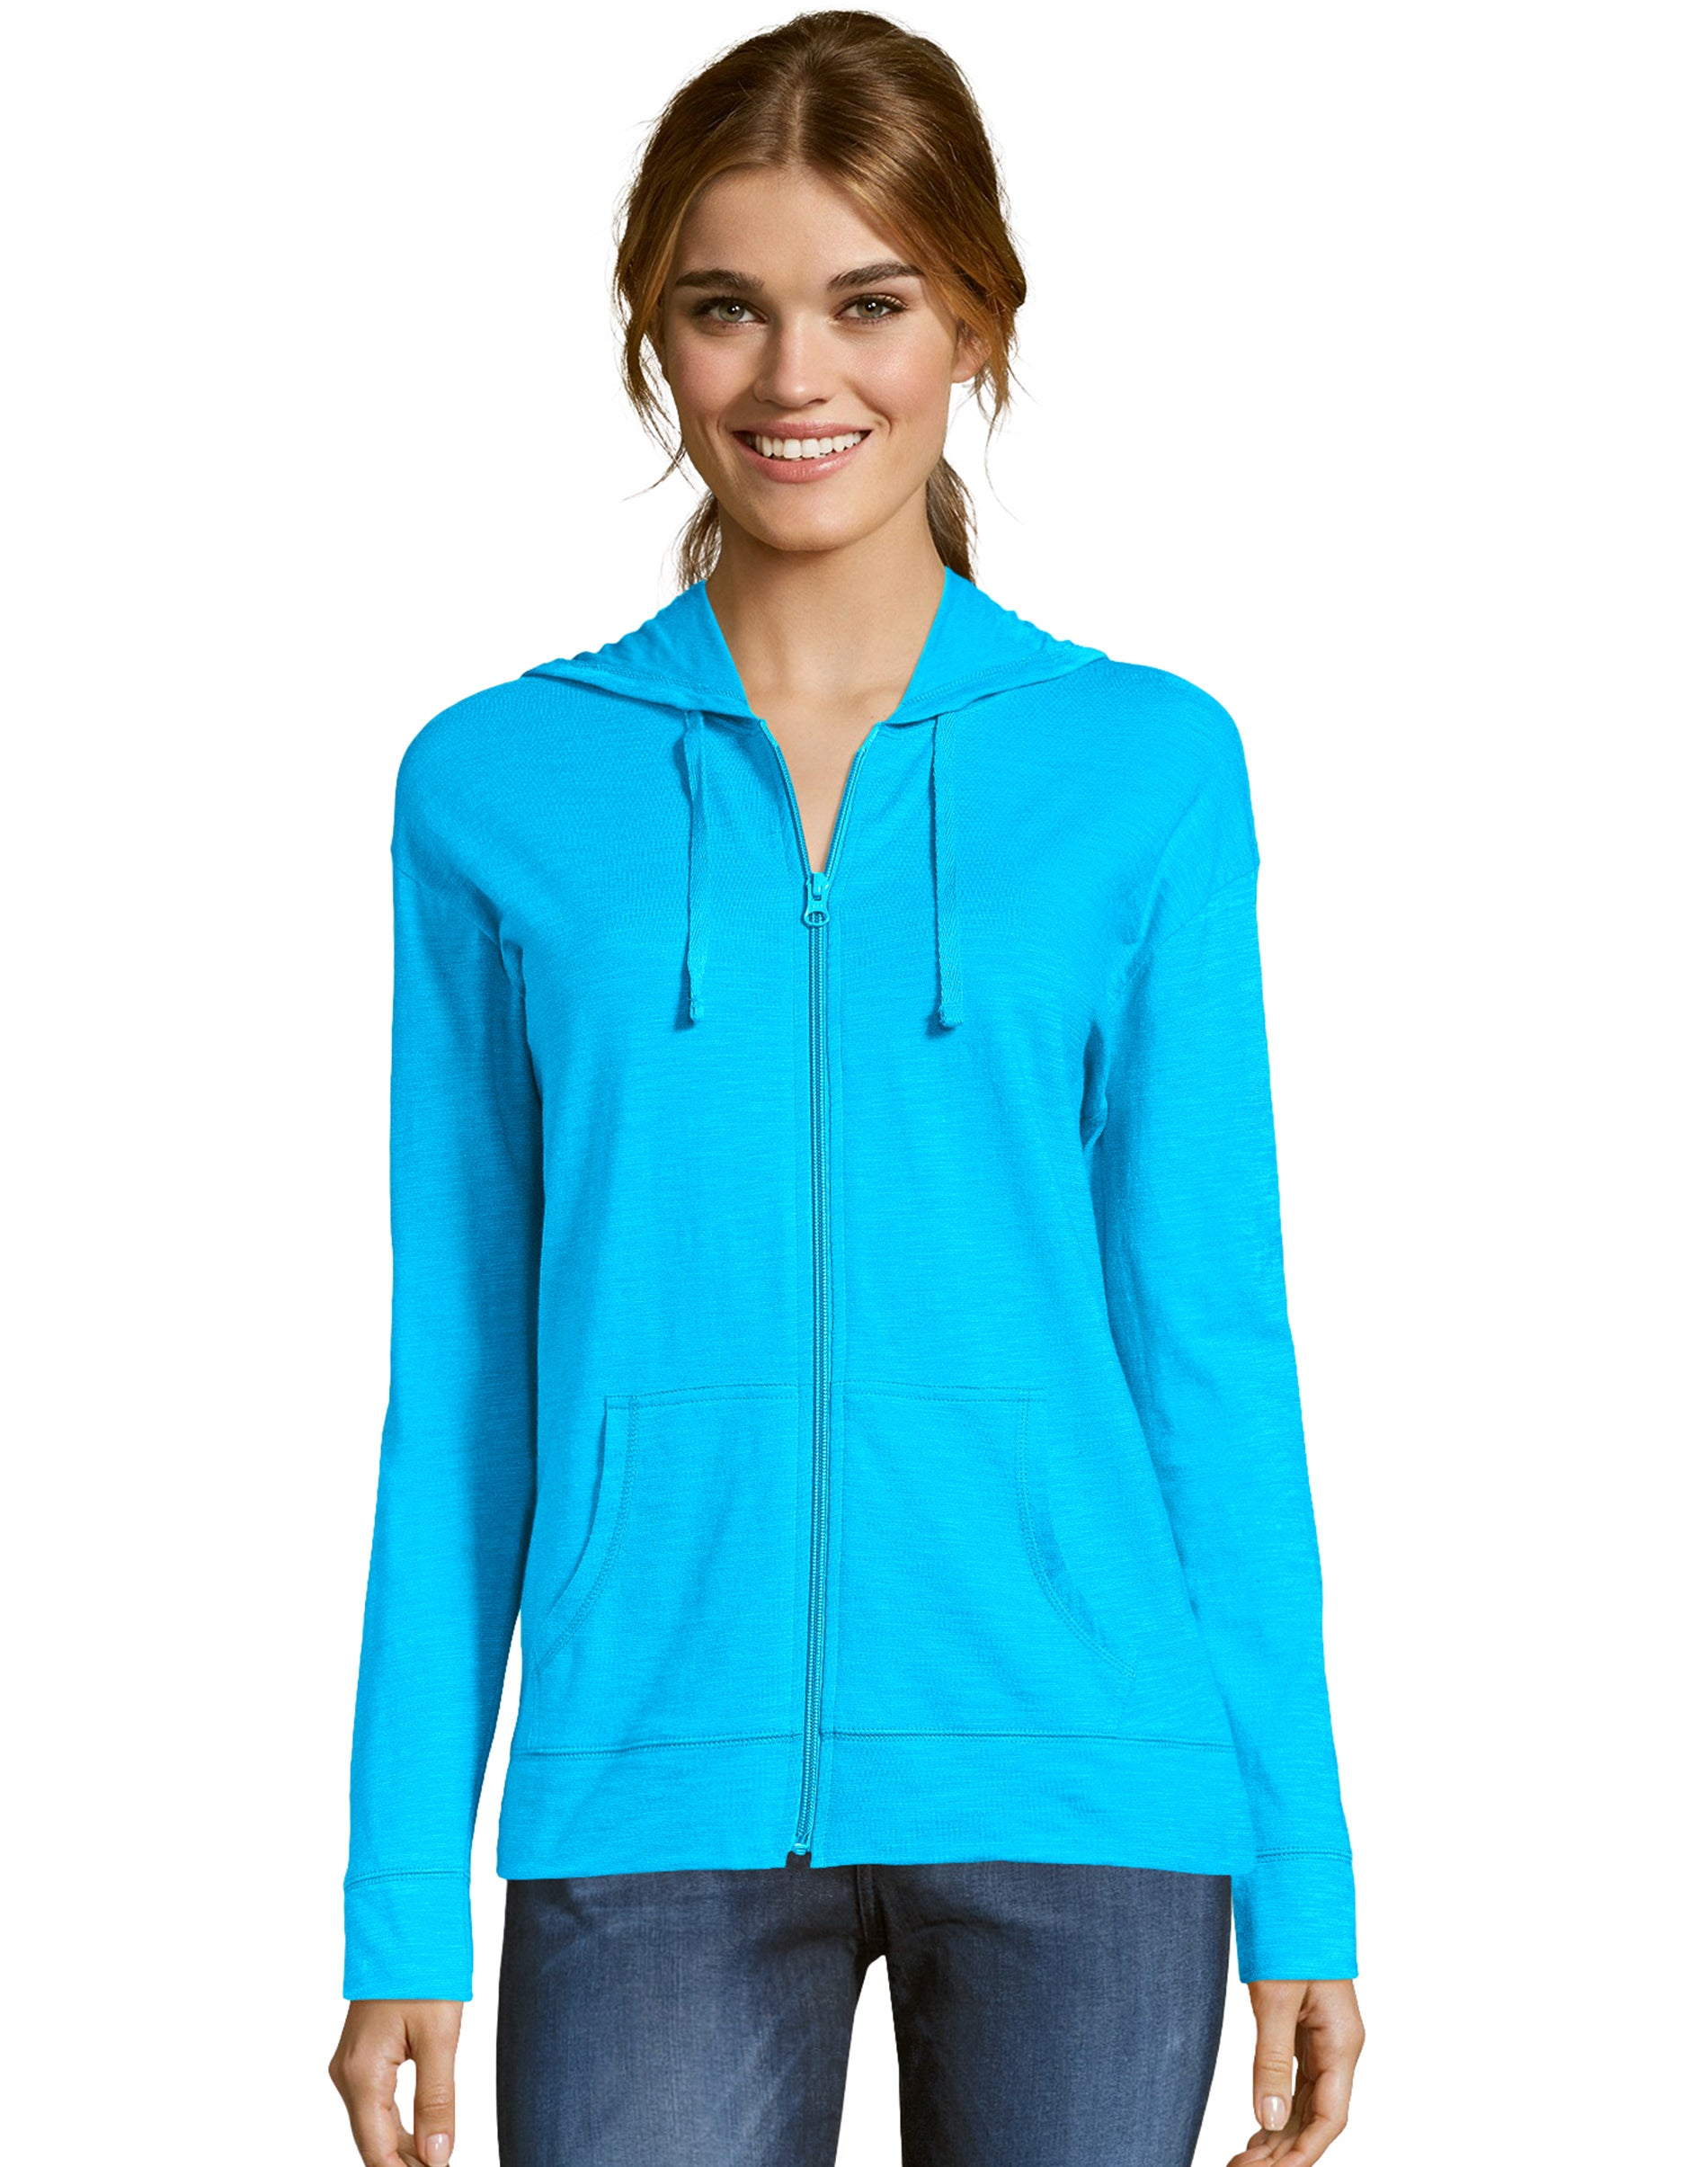 Hanes Women/'s Hoodie Lightweight Pockets Slub Jersey Full Zip Sweatshirt Casual